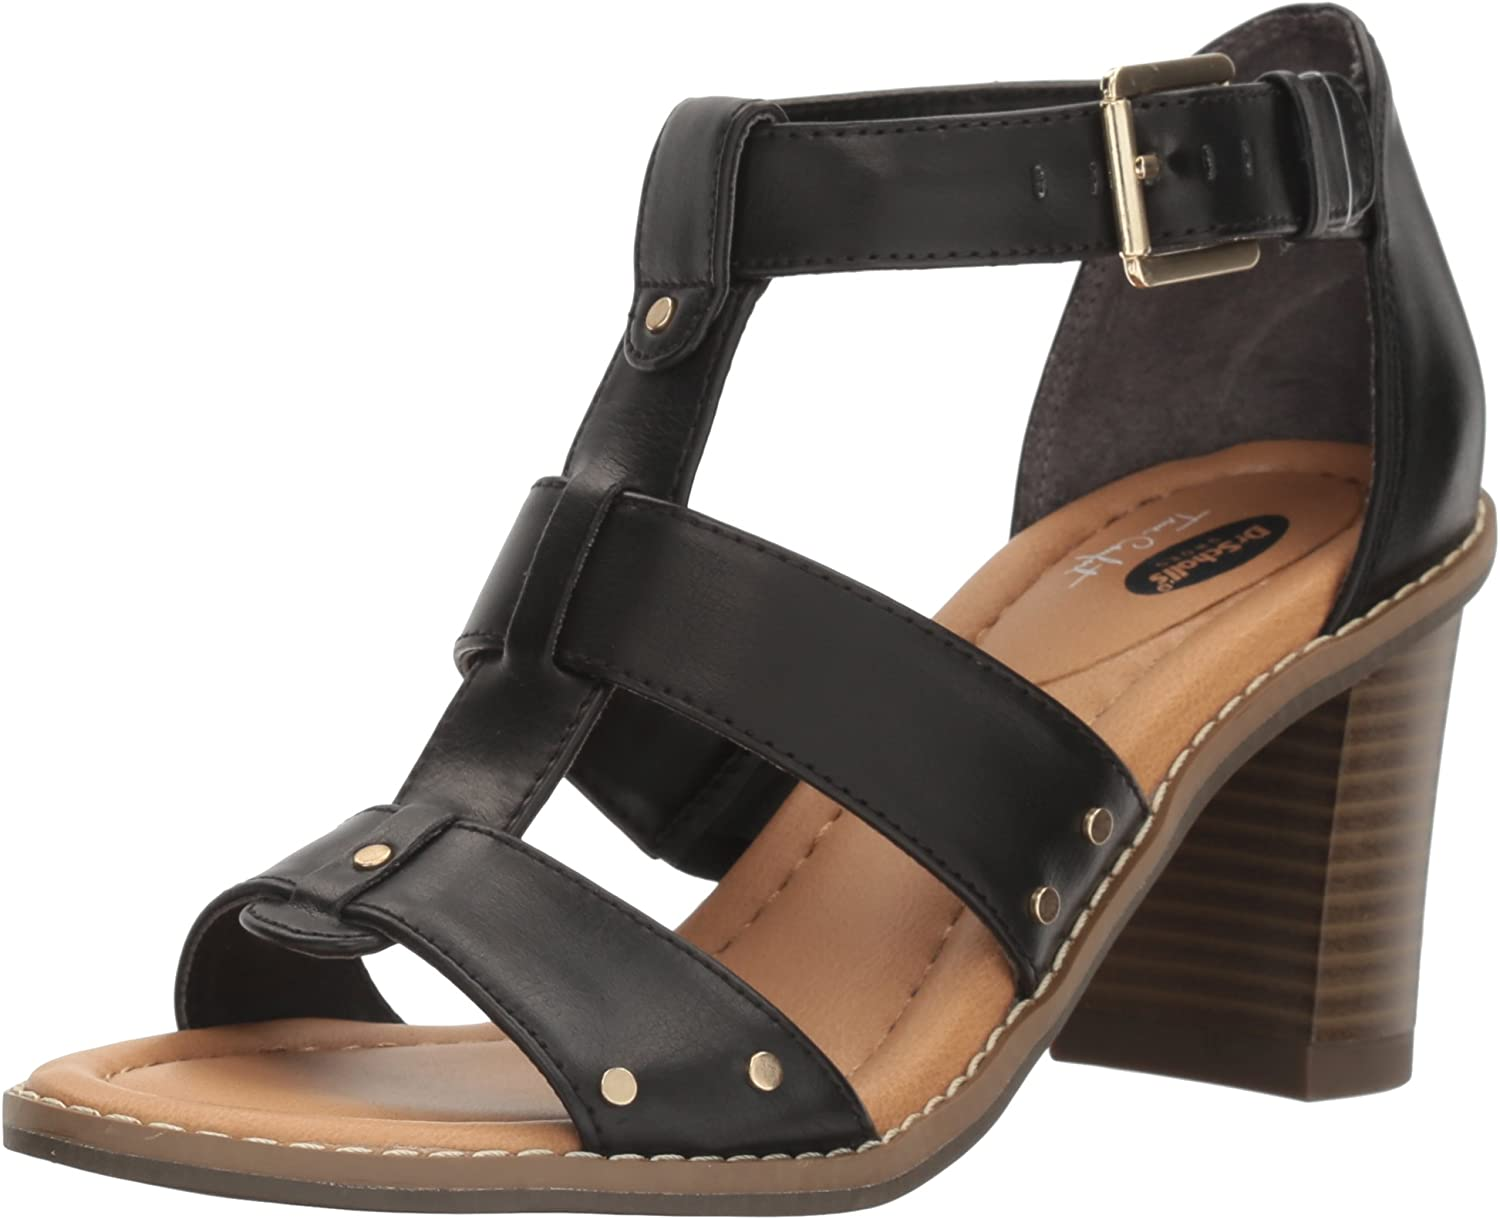 Dr. Scholl's shoes Womens Proud Gladiator Sandal